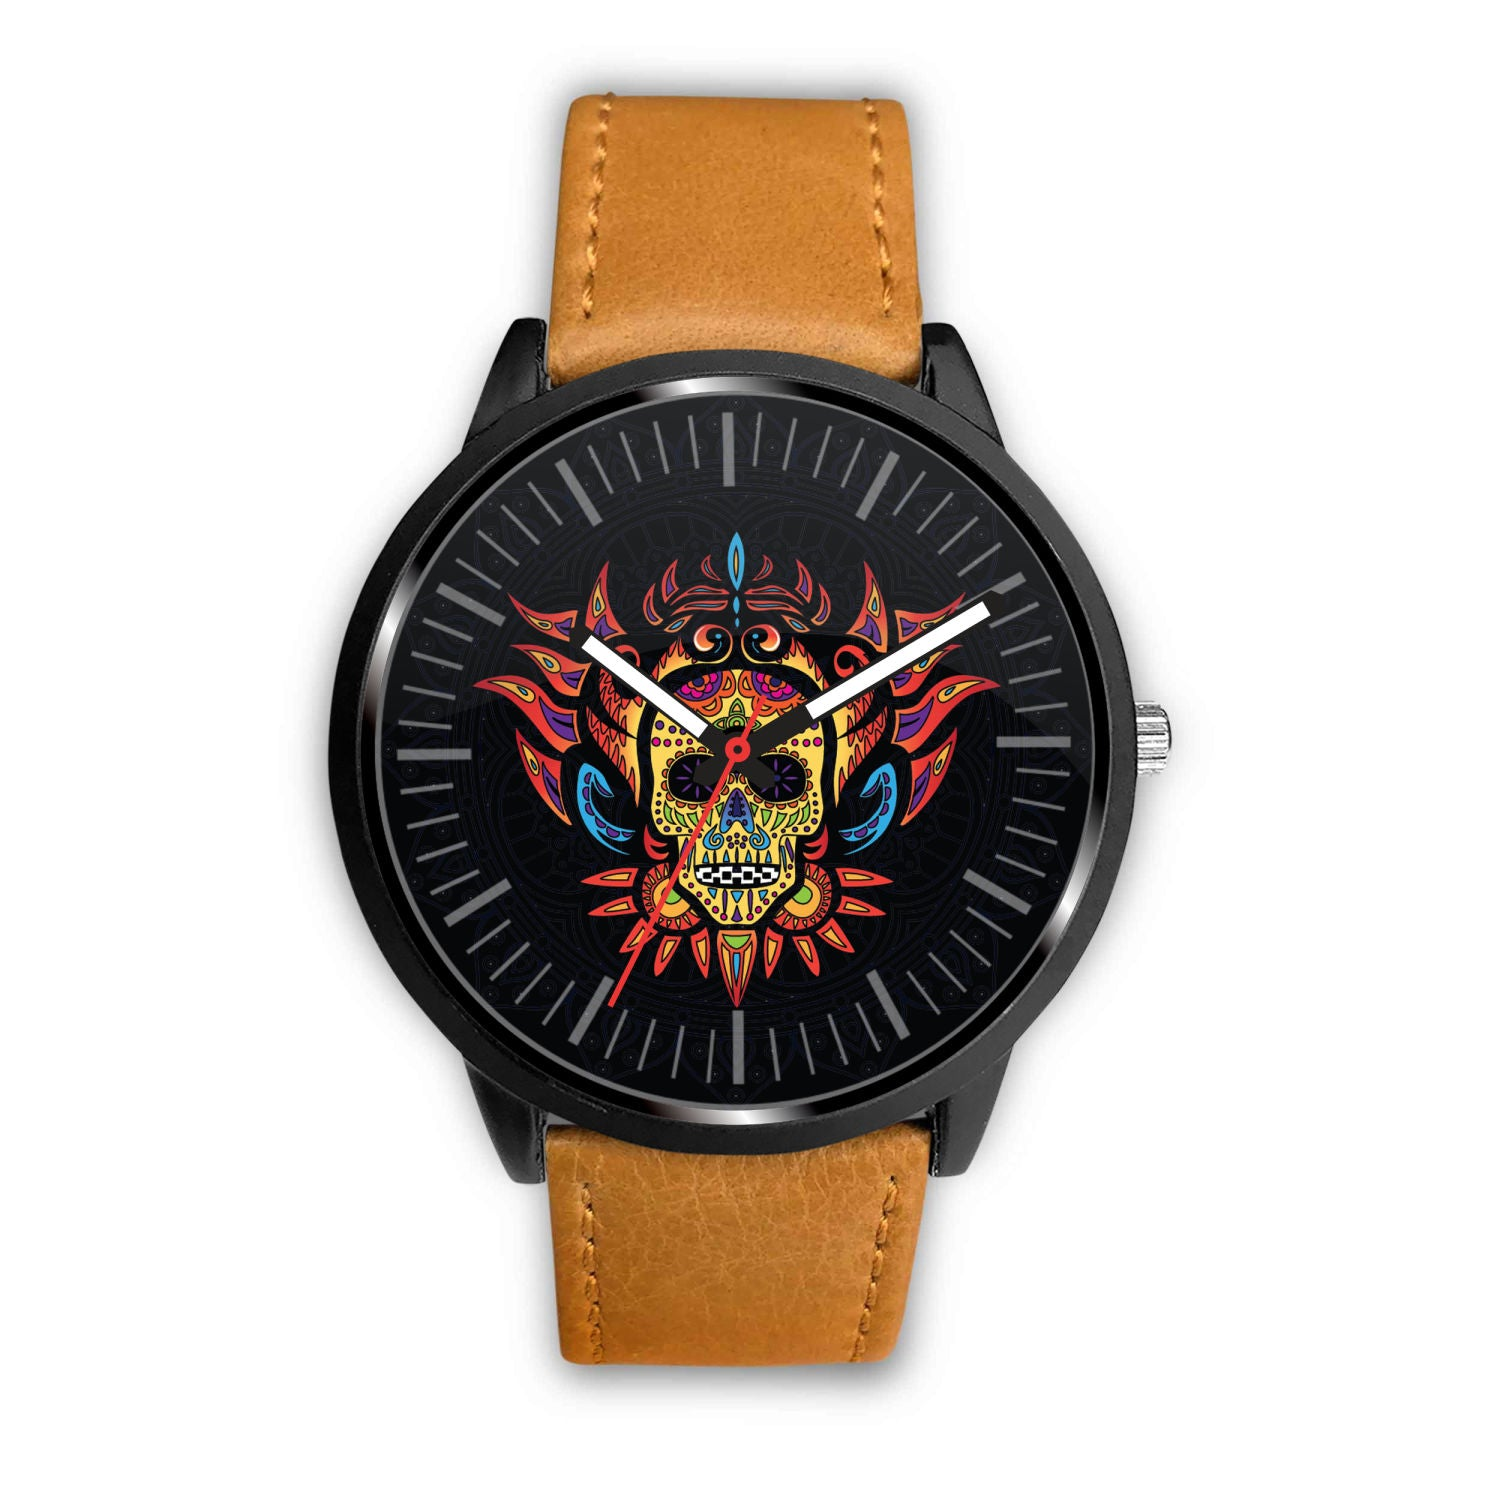 3D Skull Watch - Stainless steel back with leather/ stainless steel band 001 - designfullprint